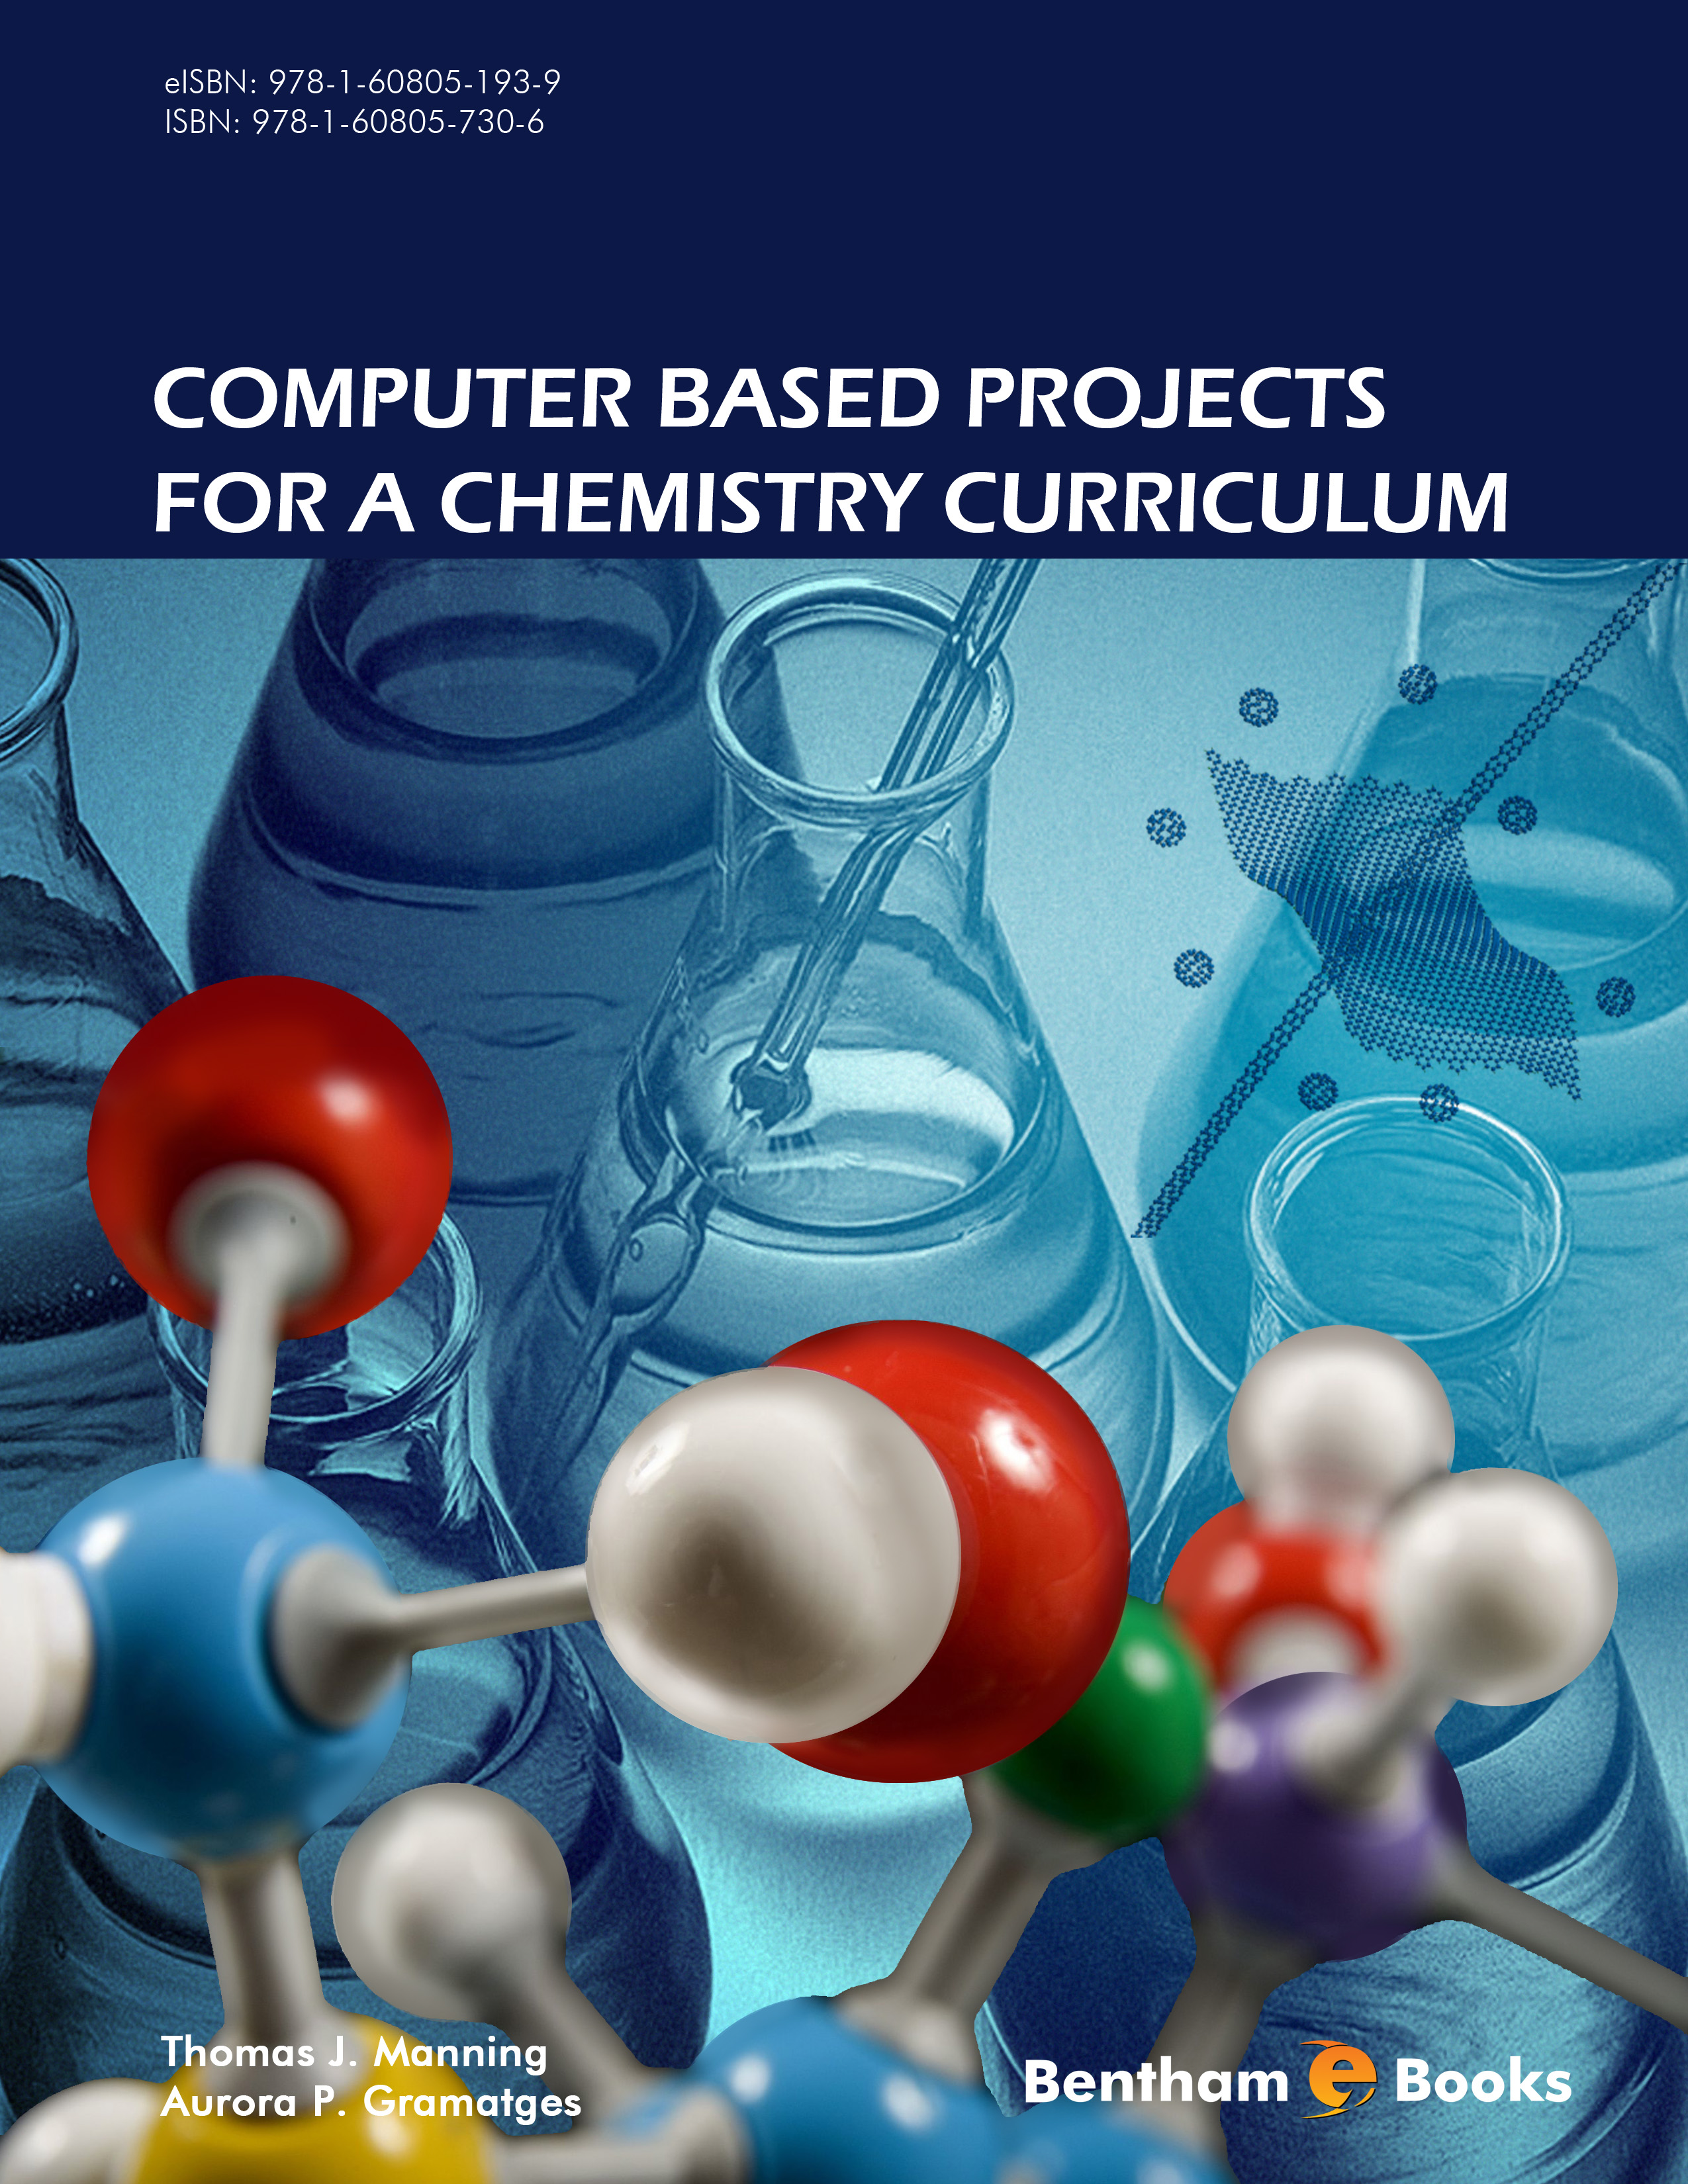 Computer Based Projects for a Chemistry Curriculum